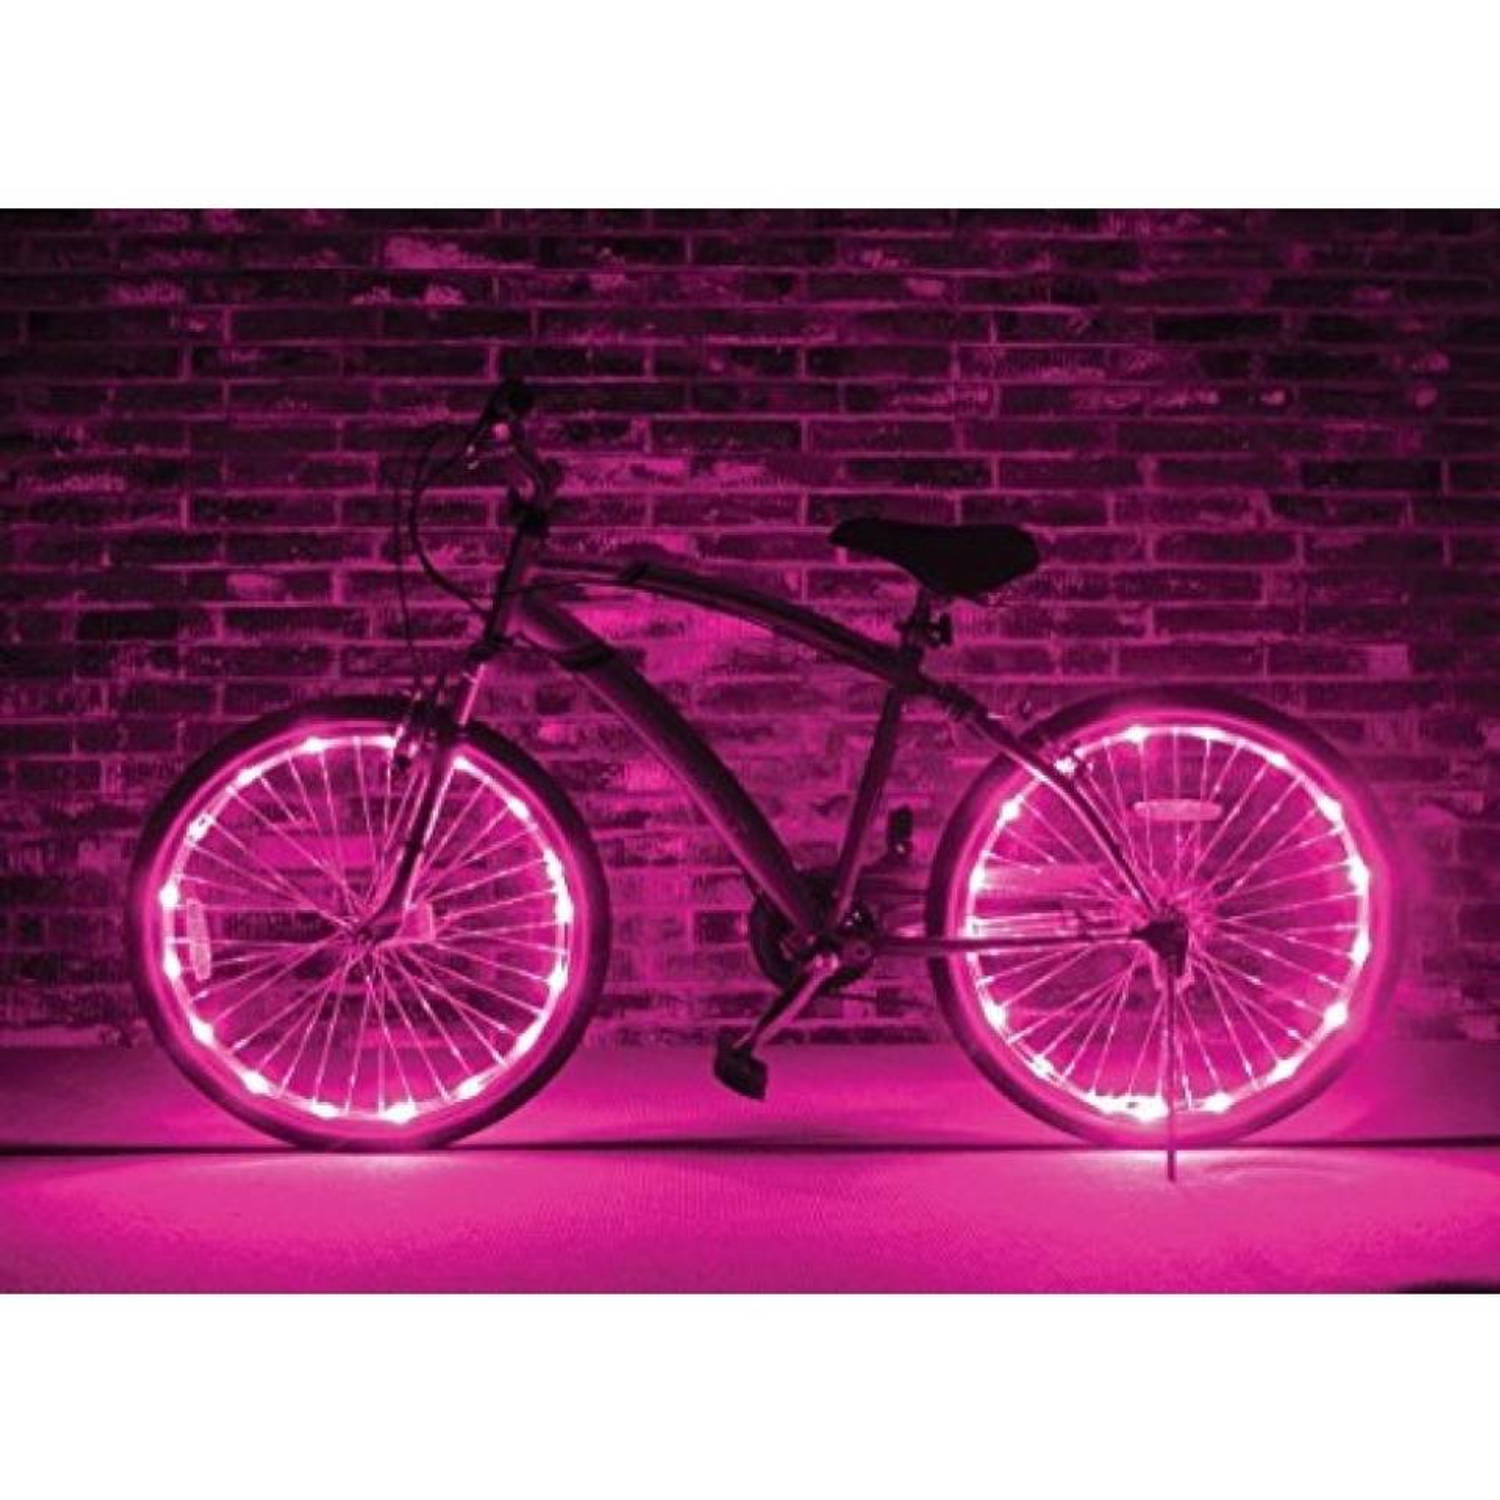 johntoy wielverlichting wheels of light roze 2 stuks